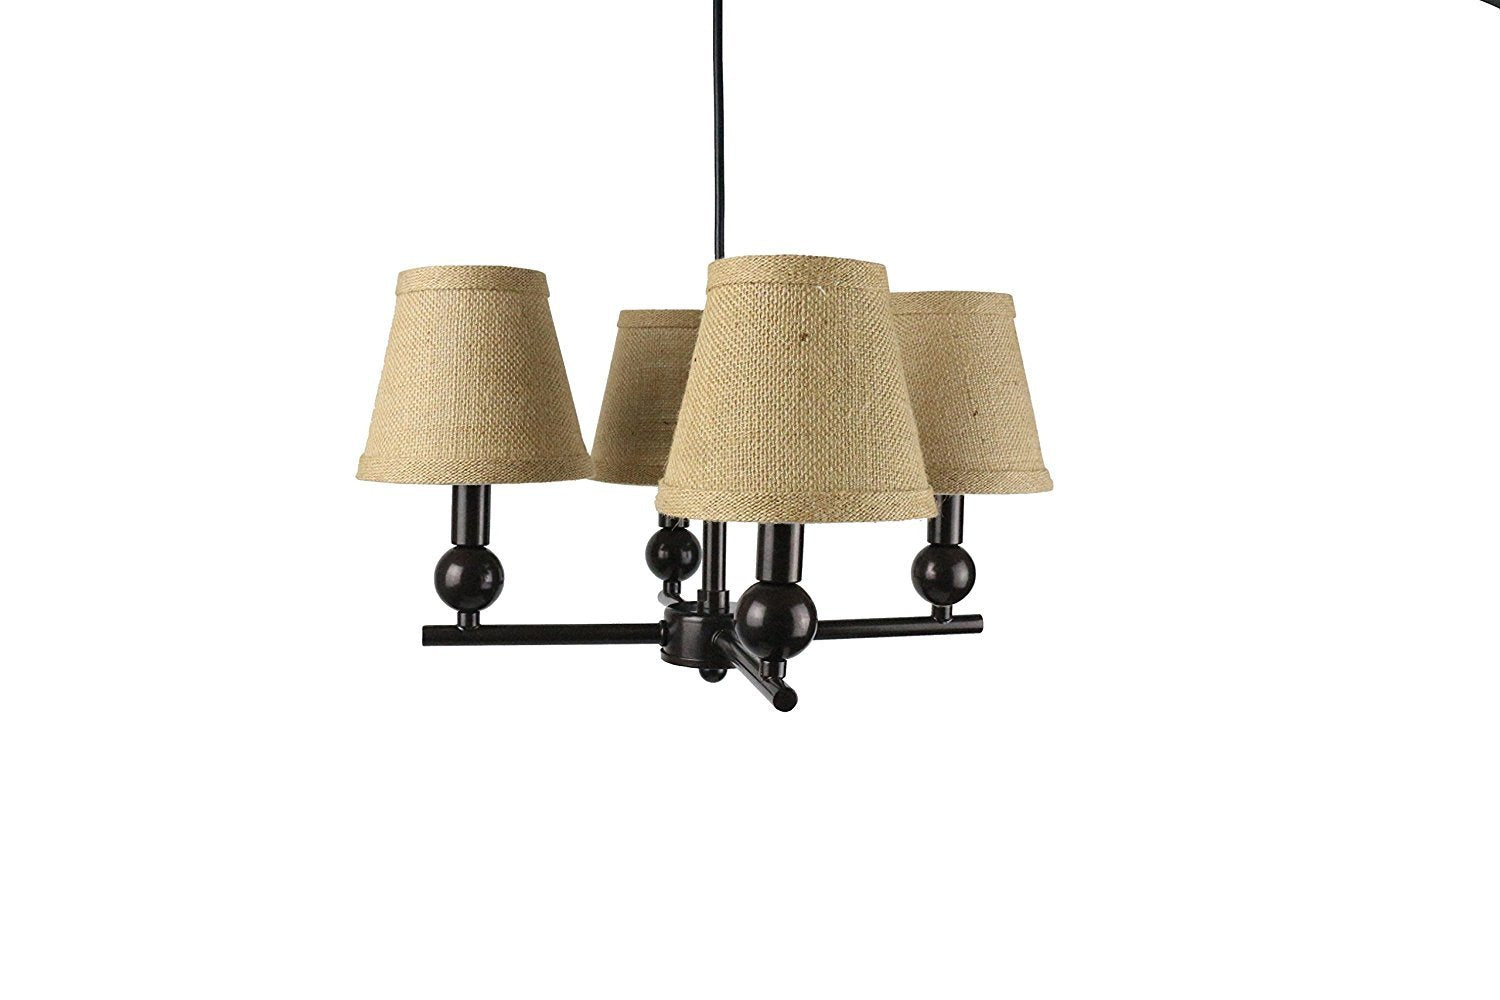 Portable Zio 4-Light Chandelier with Burlap Hardback Shades